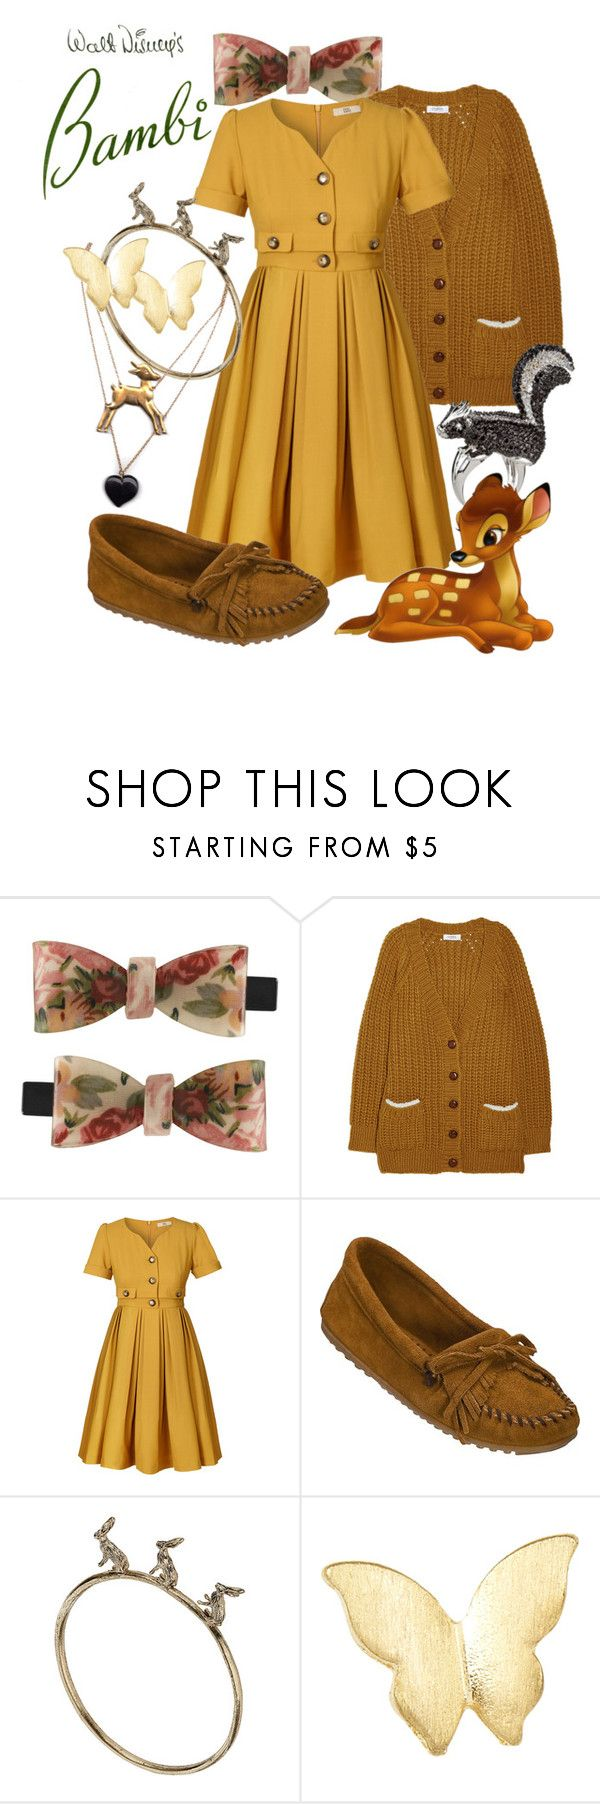 """Bambi"" by princesschandler ❤ liked on Polyvore featuring Miso, Sonia by Sonia Rykiel, Orla Kiely, Minnetonka, nOir, Miss Selfridge and Warehouse"